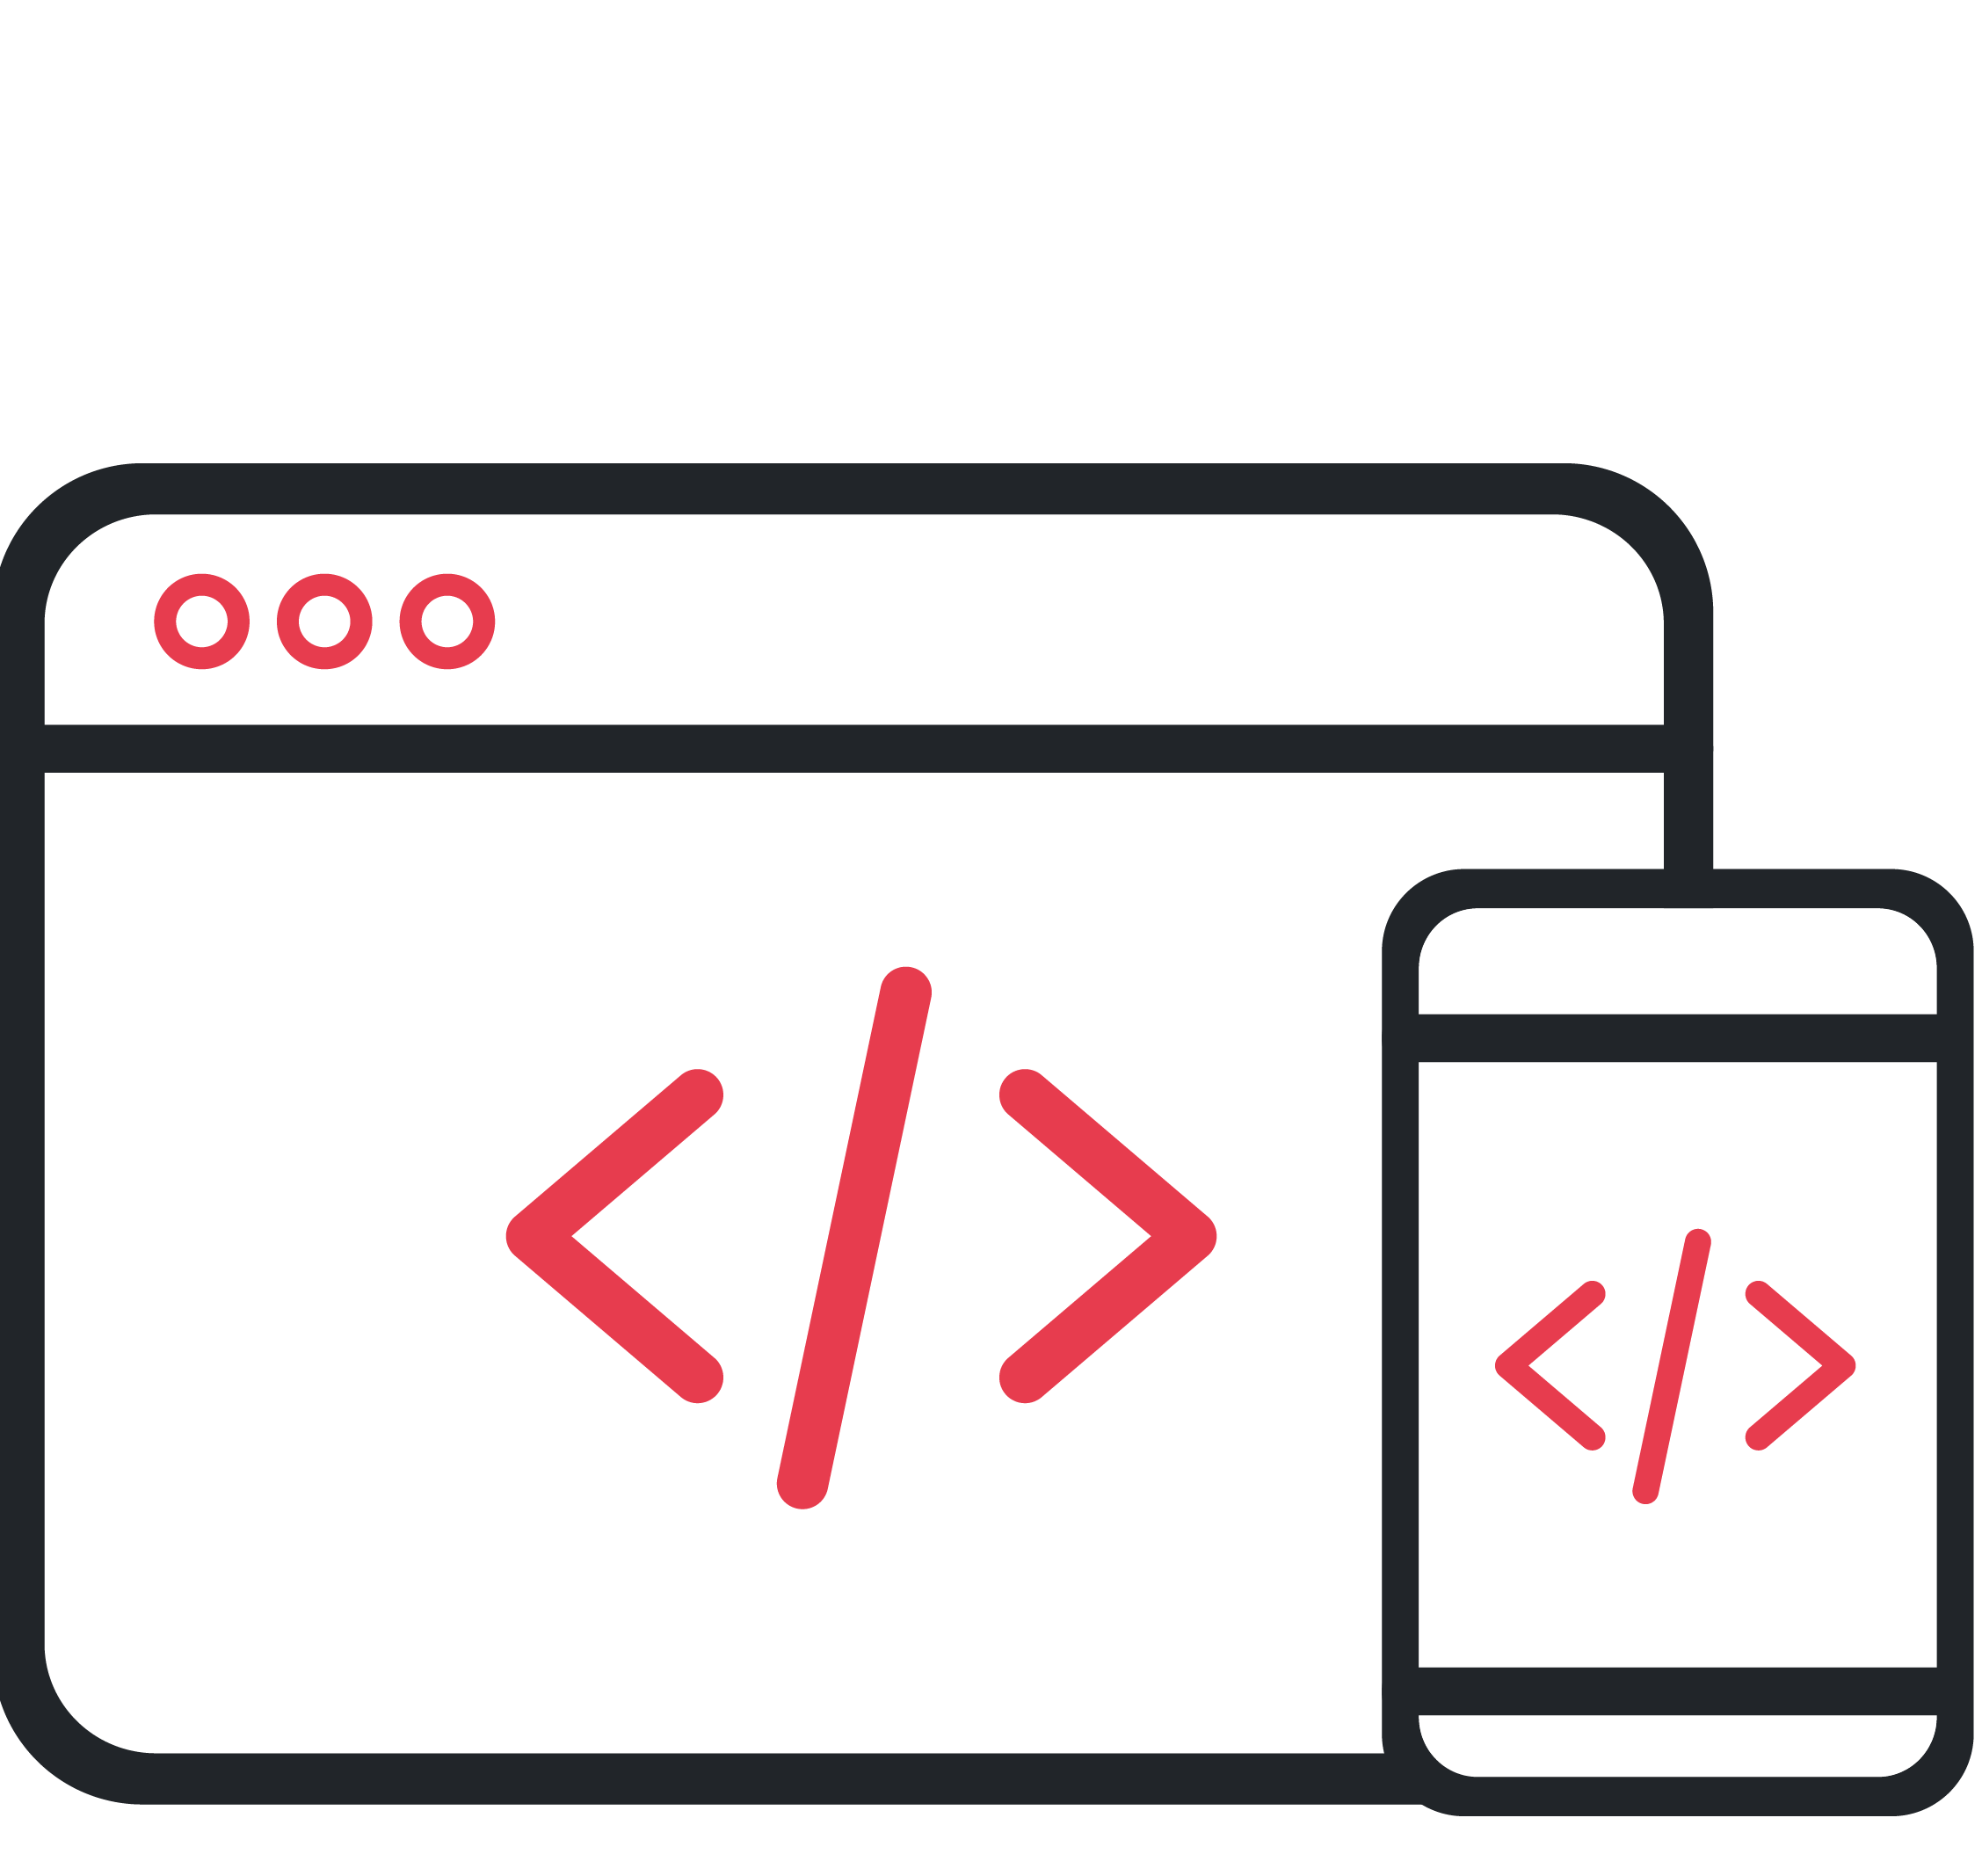 Graphic Icon Depicting Front-End Coding Activities